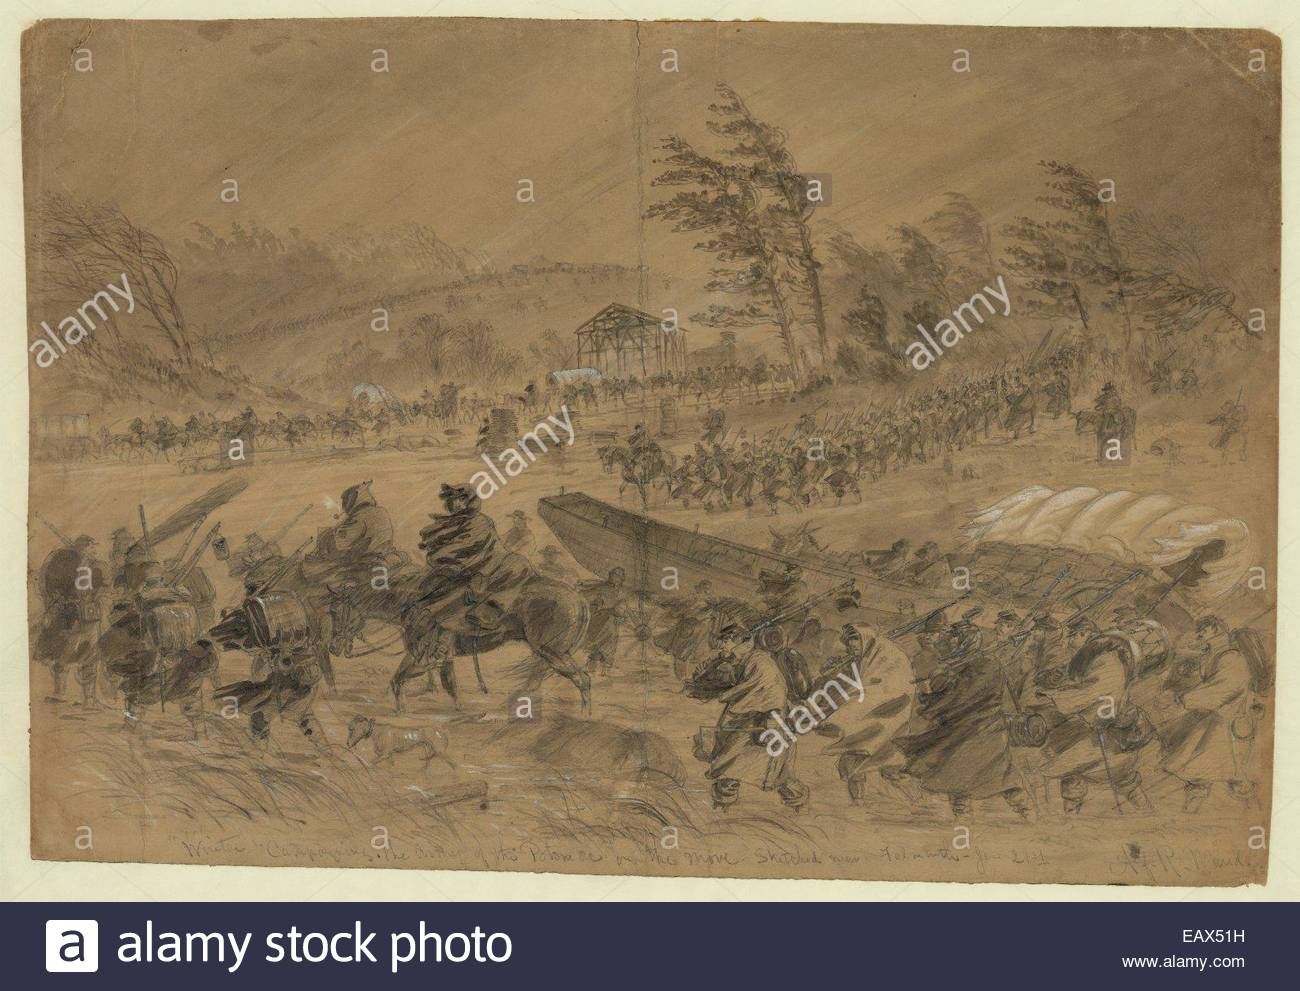 A sketch of the Army of the Potomac advancing toward the Rappahannock River during winter. - Stock Image